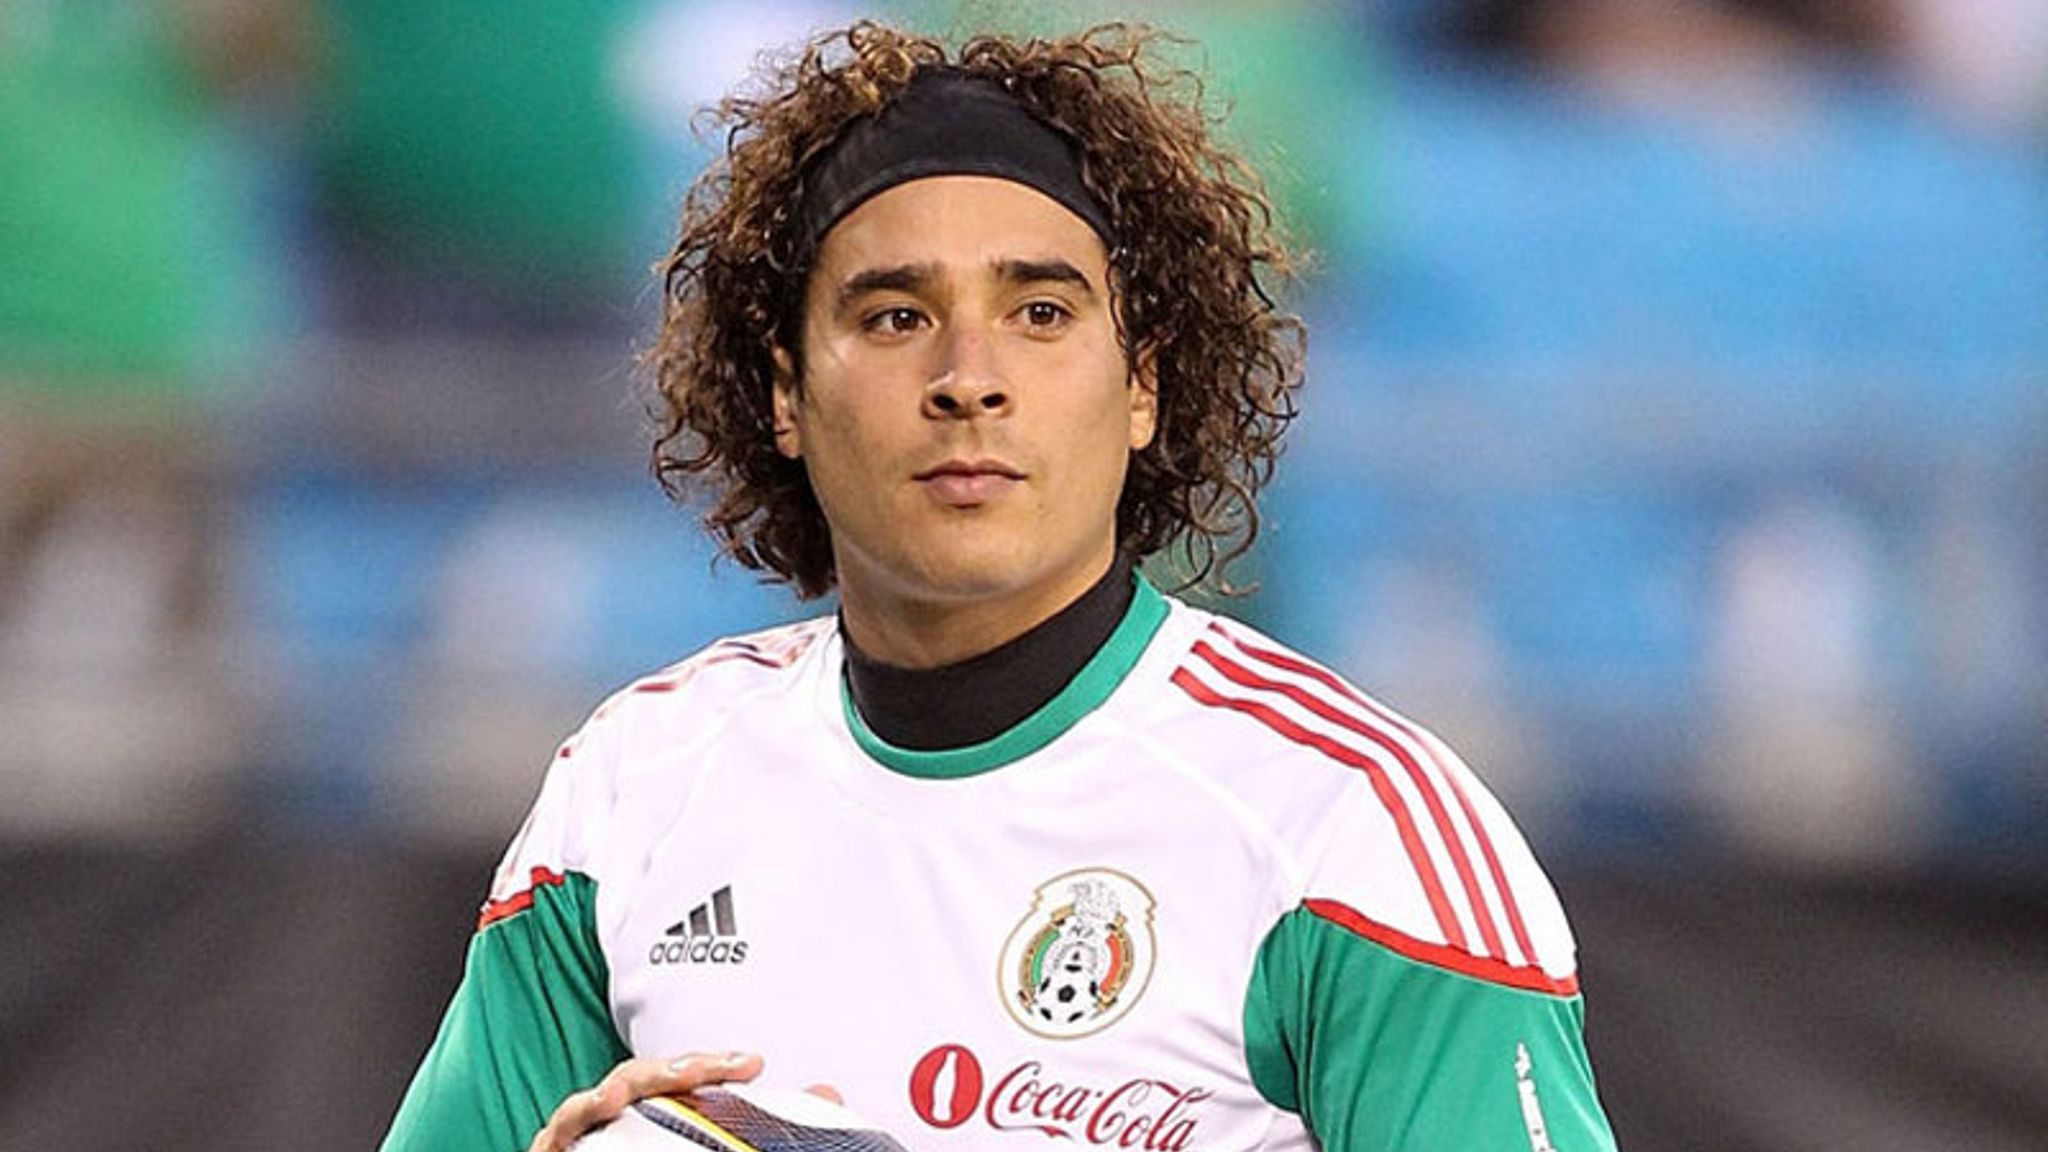 Guillermo Ochoa Is A Mexican Professional Footballer Who Plays As A Goalkeeper For Liga Mx Club America And T Mexico National Team Soccer Players Mexico Soccer